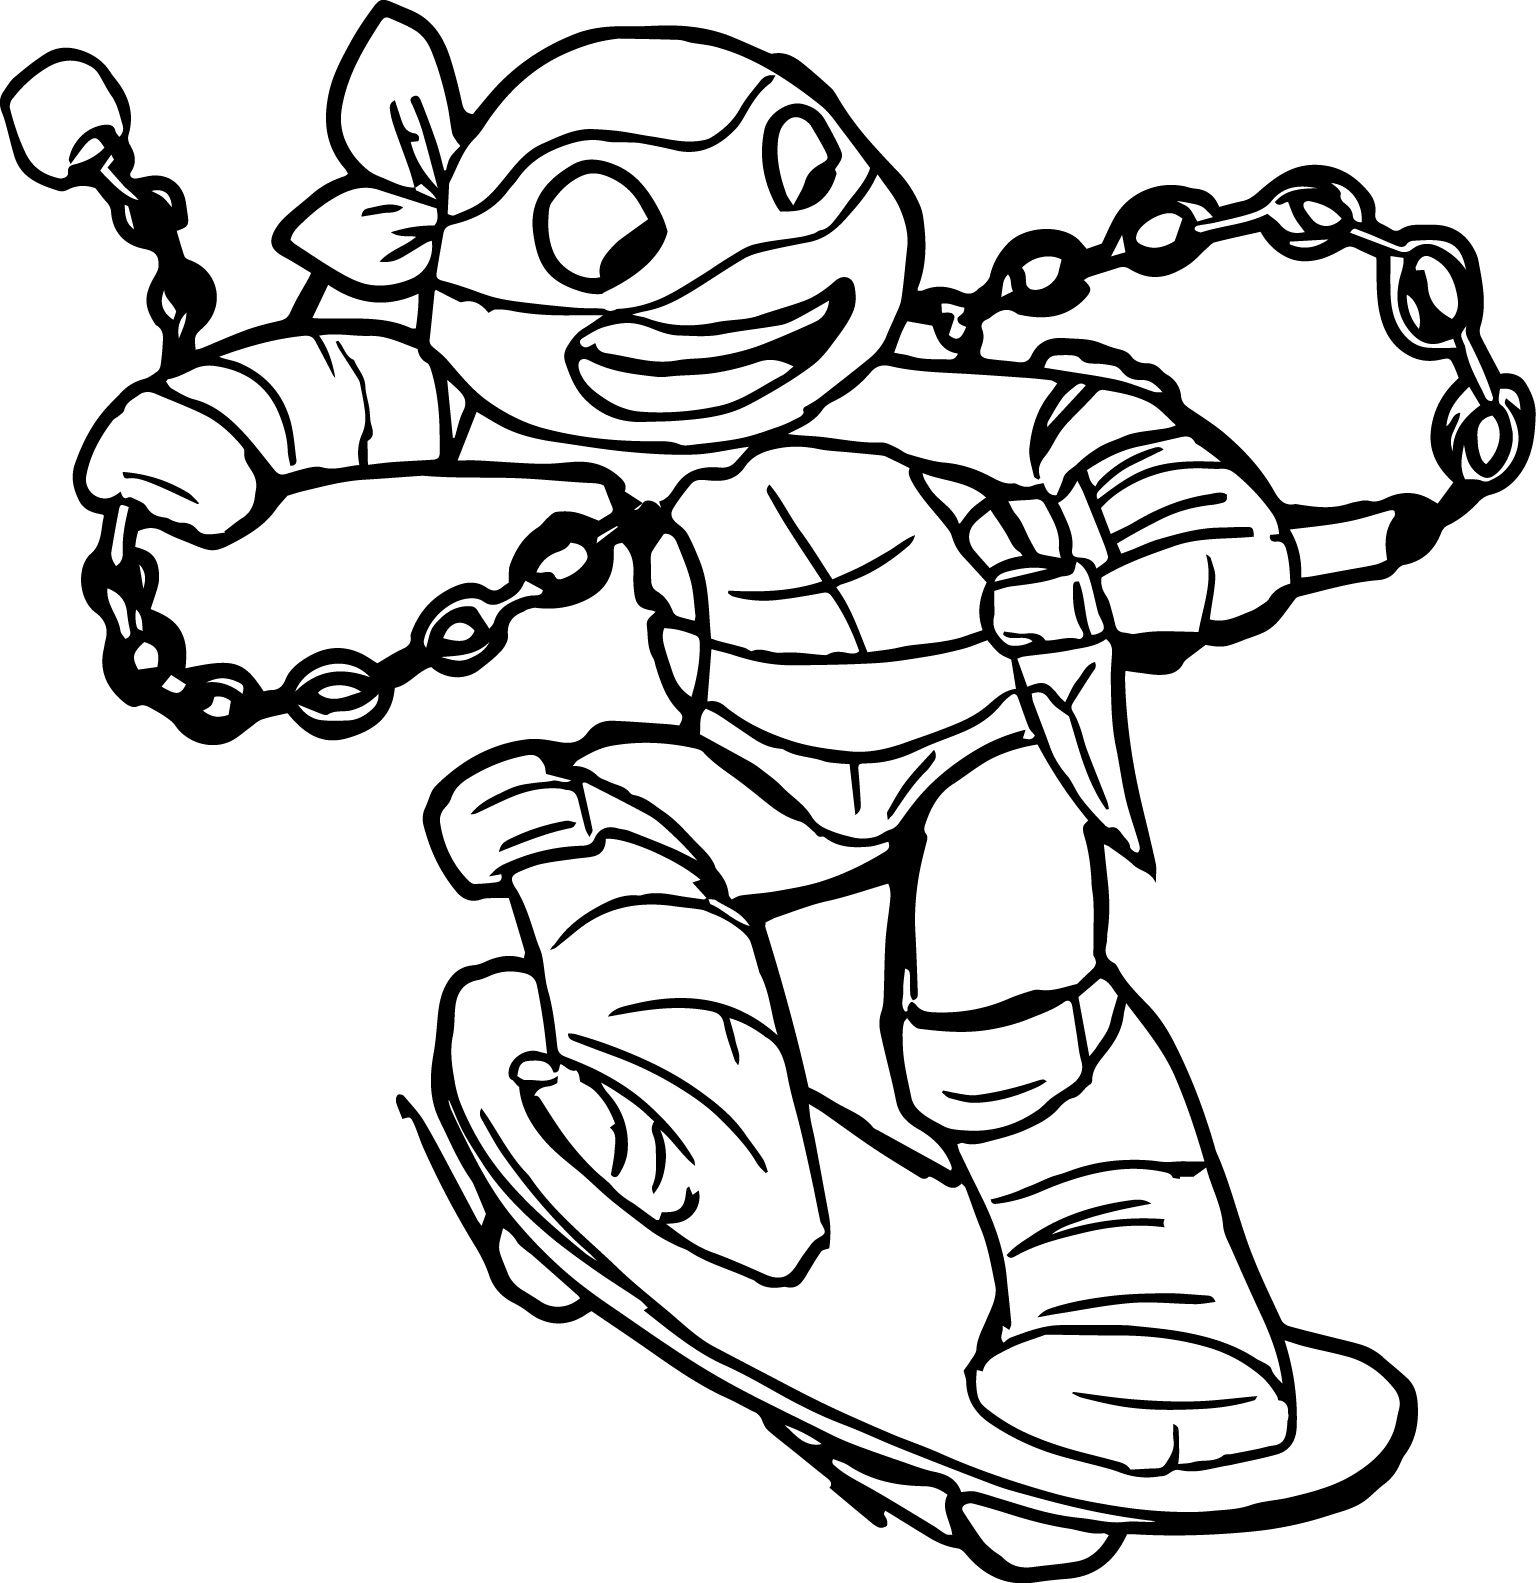 Ninja Turtle Going On Skater Coloring Pagejpg 15361583 sofii